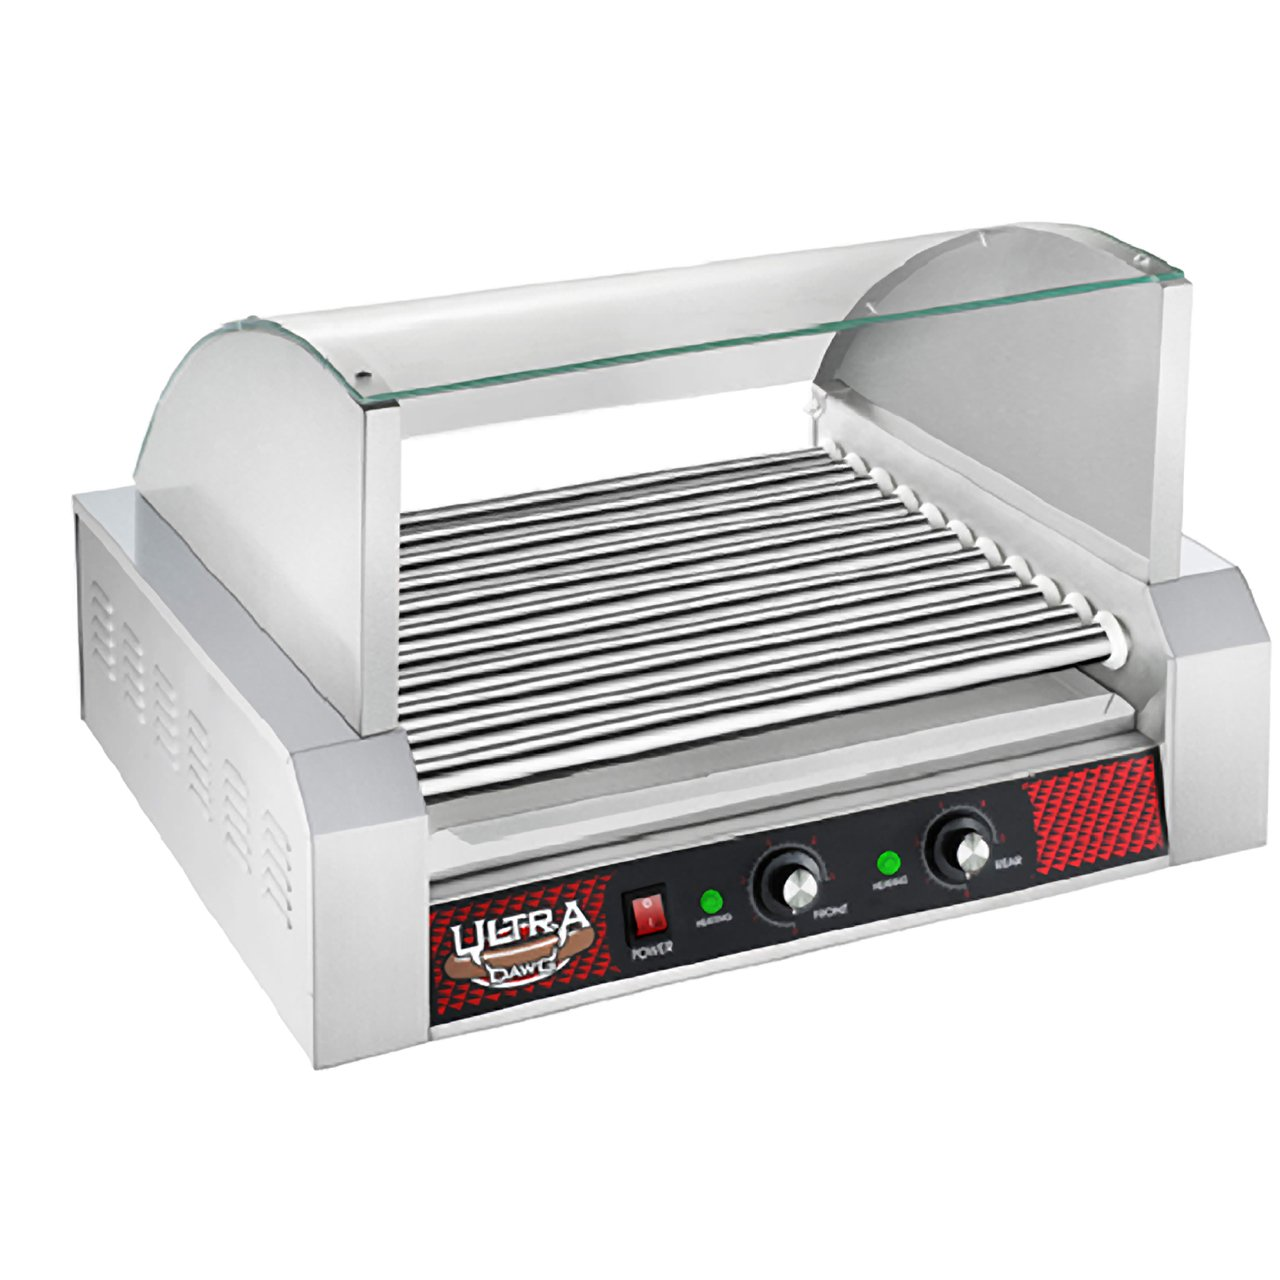 Great Northern Popcorn Commercial Quality 30 Hot Dog 11 Roller Grilling Machine with Cover by Great Northern Popcorn Company